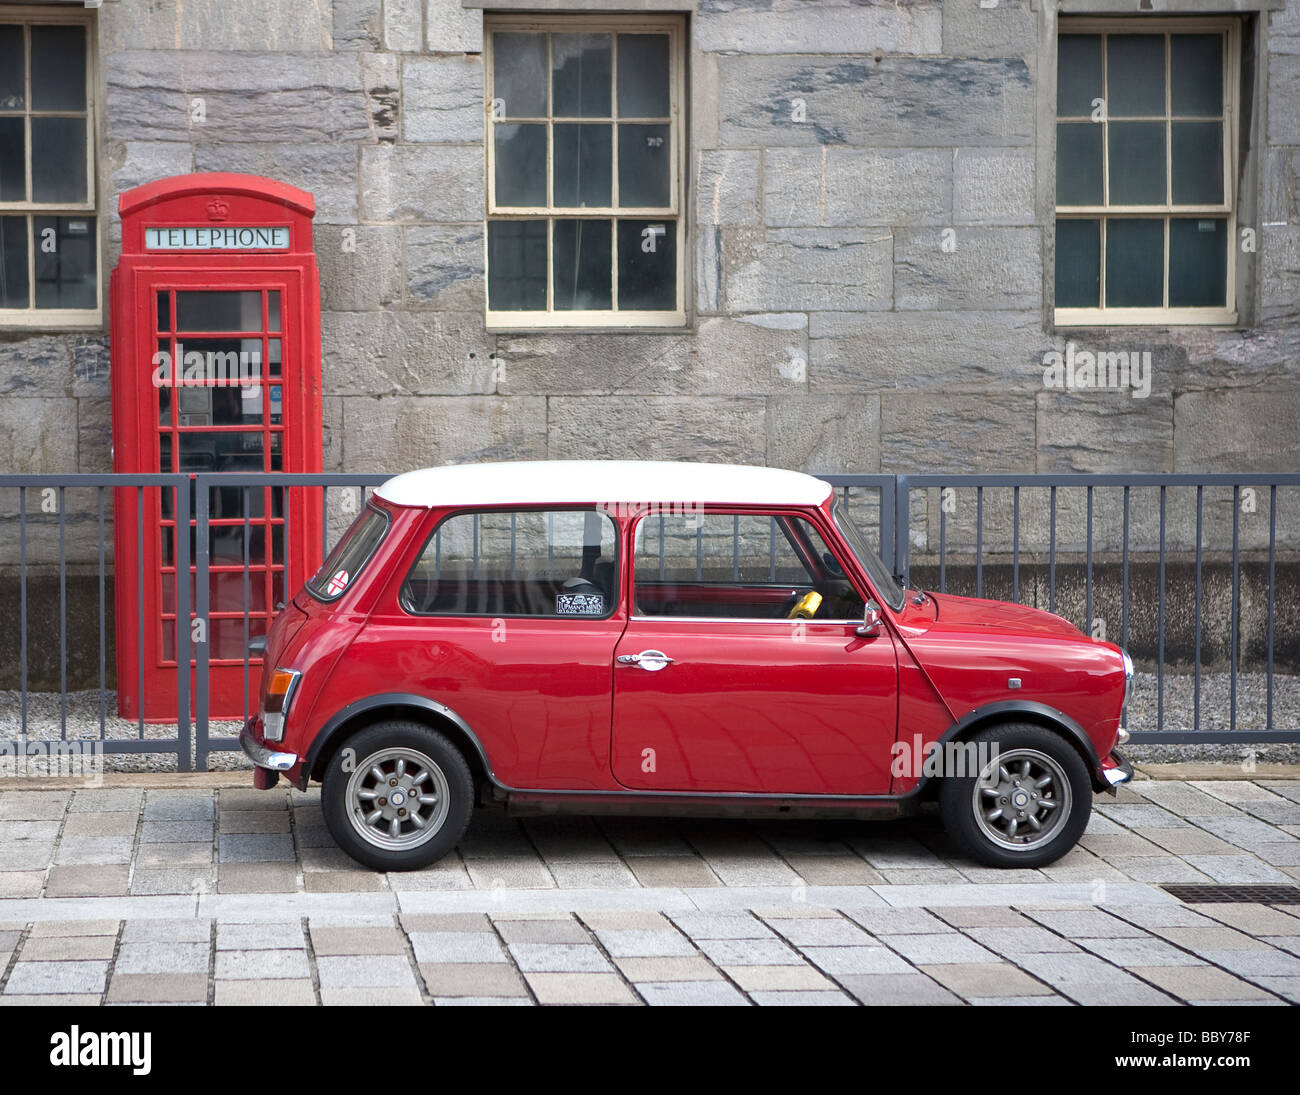 red Austin Cooper mini car parked in front of red telephone box. Royal William Yard, Plymouth, Devon, England, UK - Stock Image